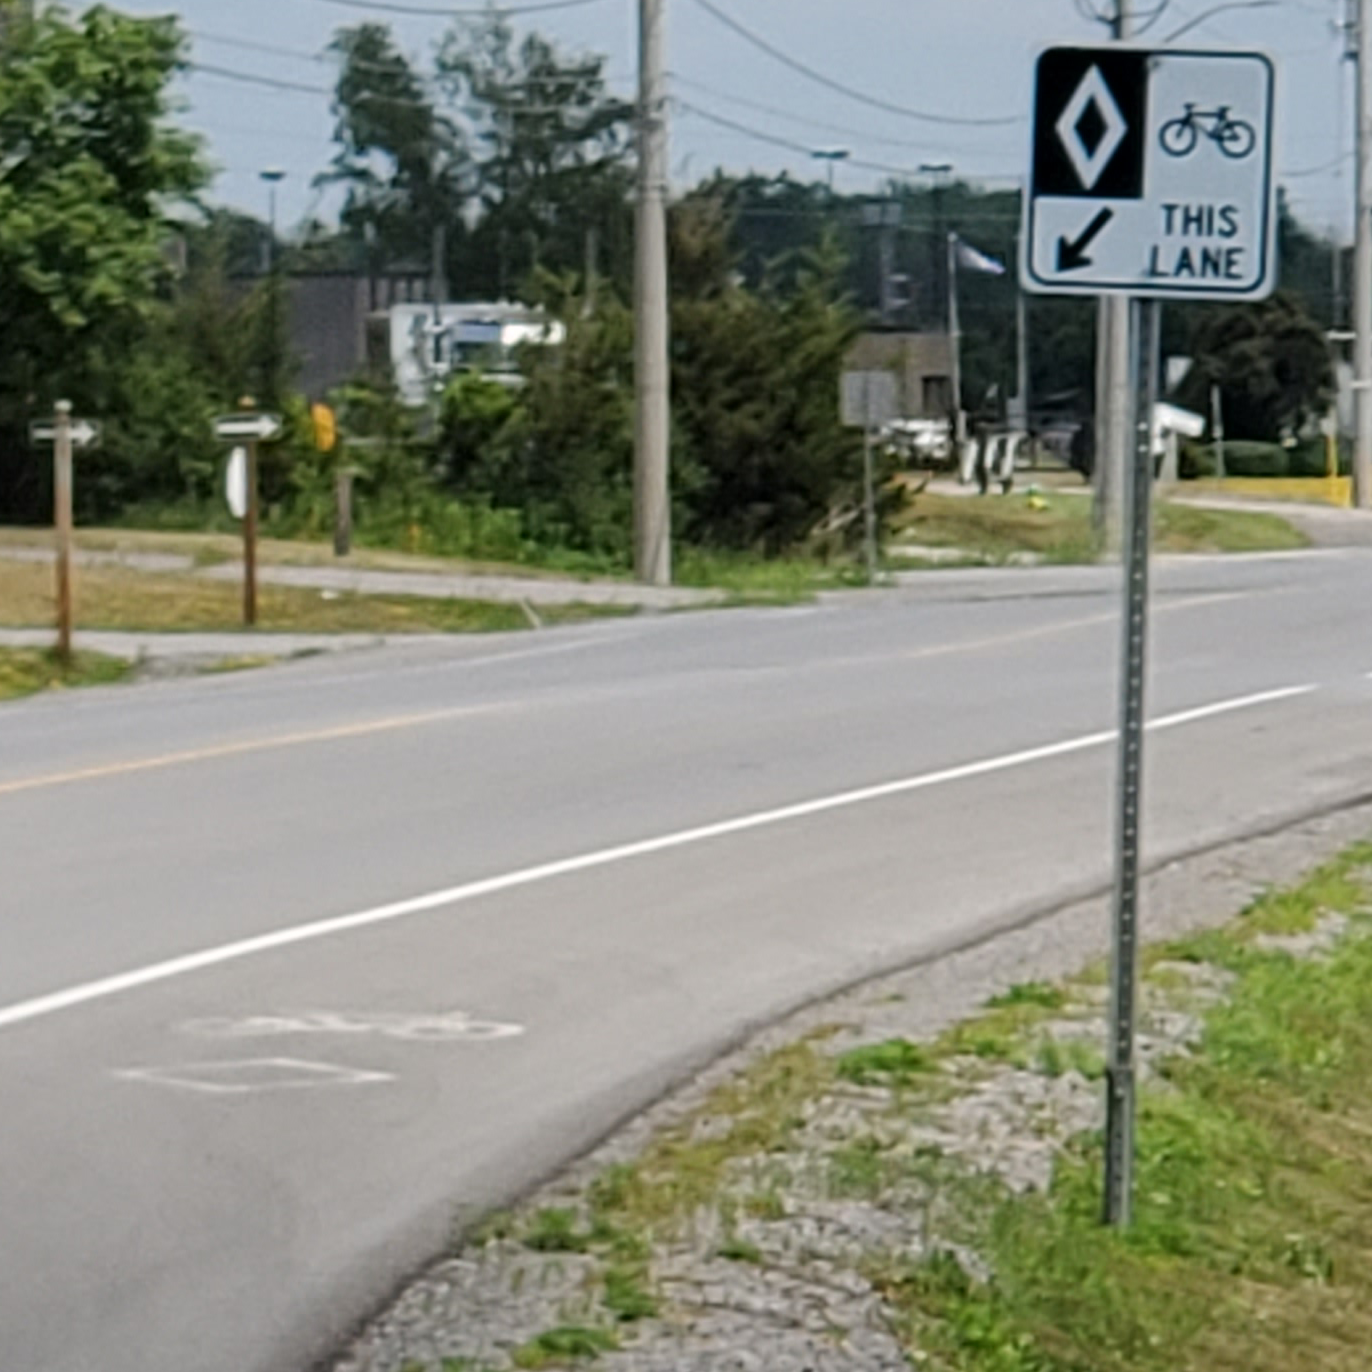 Photo of a bike lane and road sign